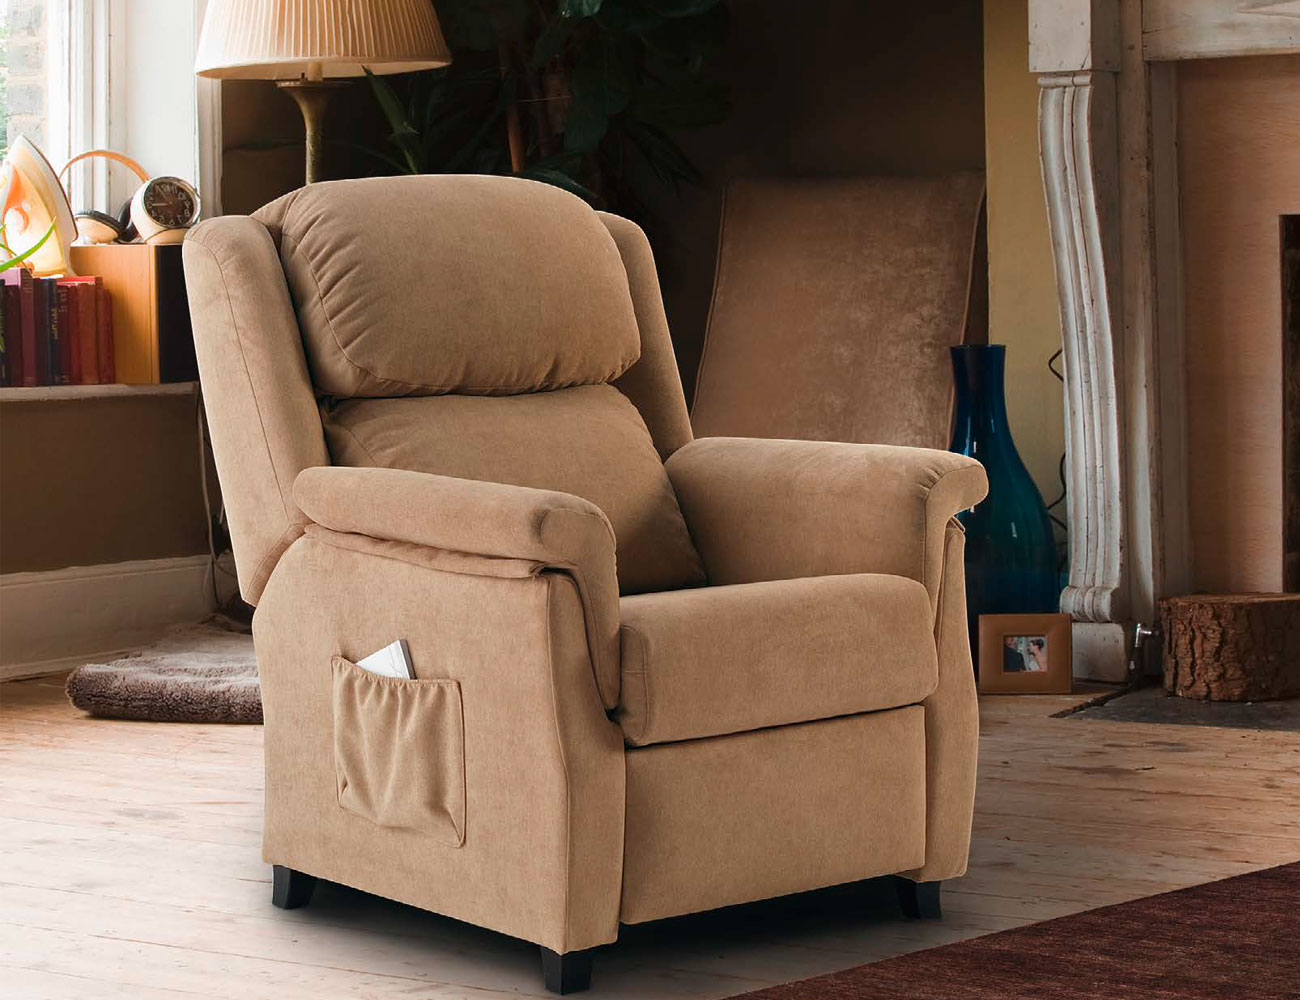 Sillon relax manual bianca 117